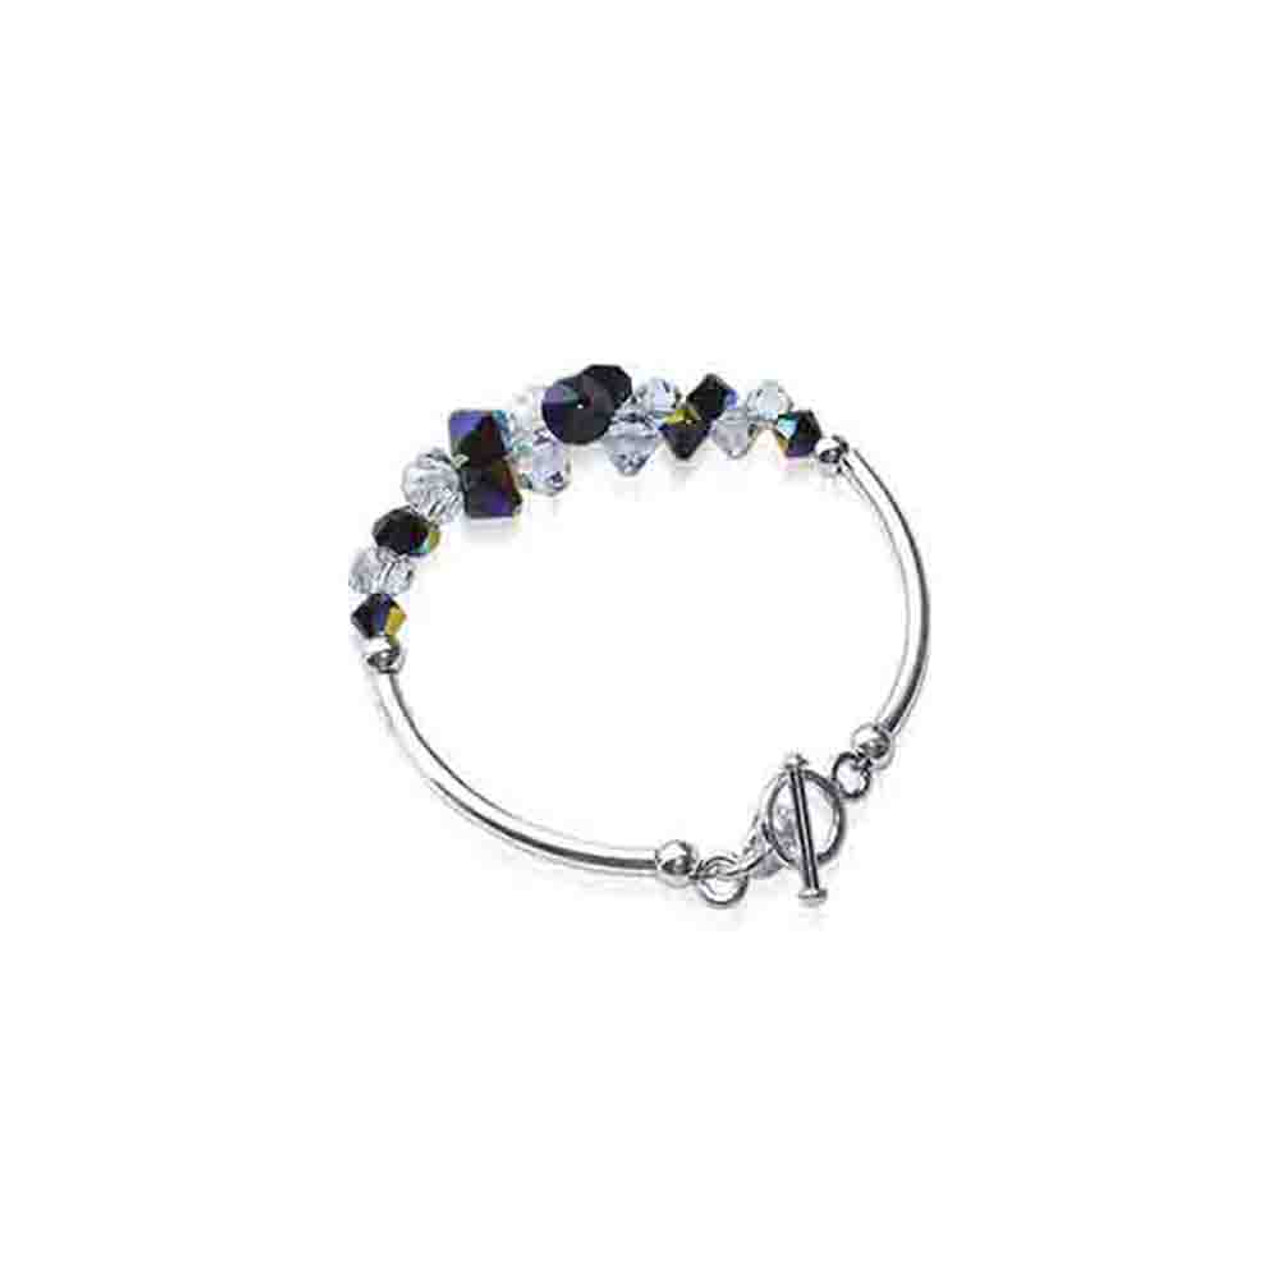 Cluster Style Swarovski Elements Clear and Black Crystal 7.5 inch Bracelet